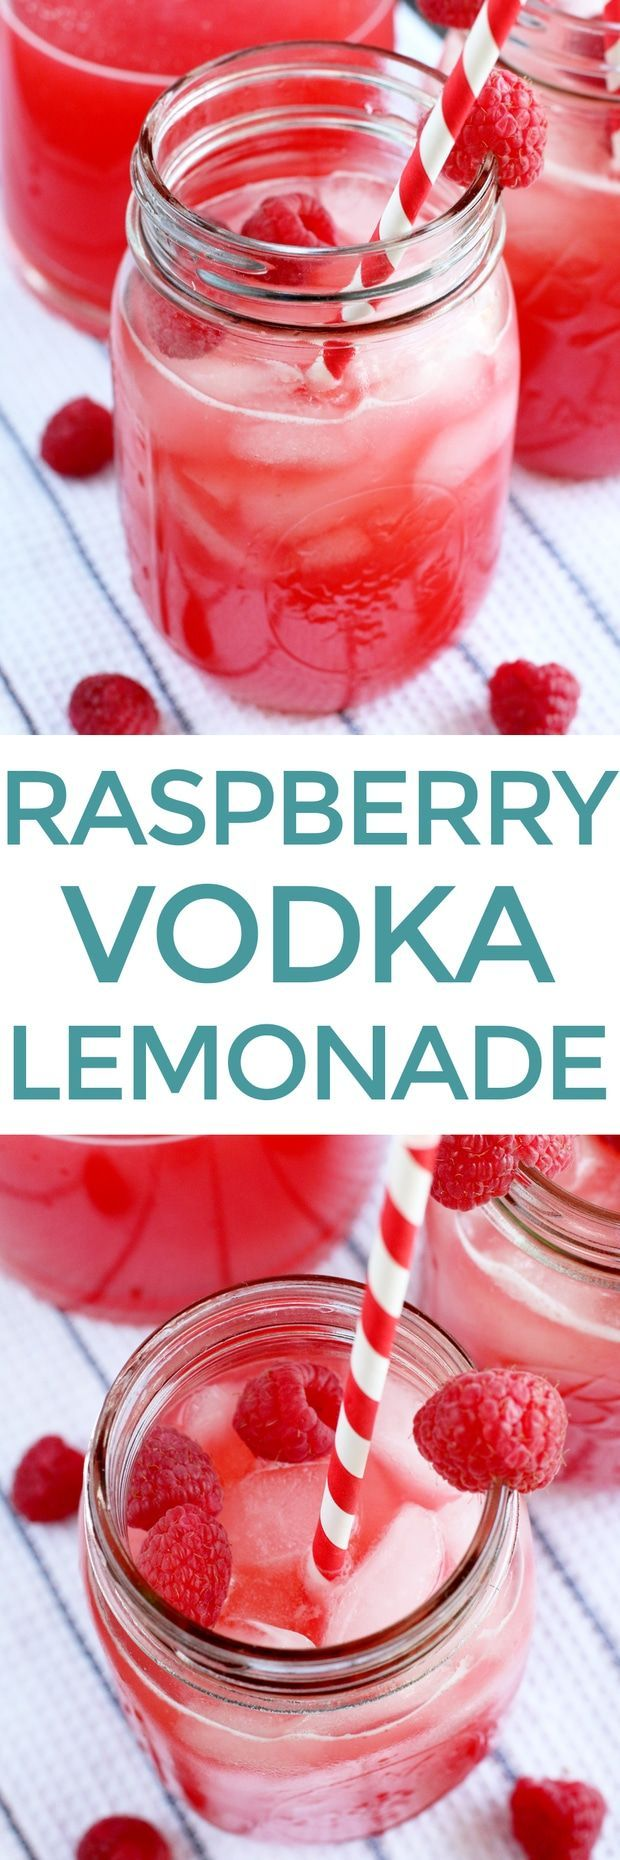 Raspberry Vodka Lemonade #raspberryvodka